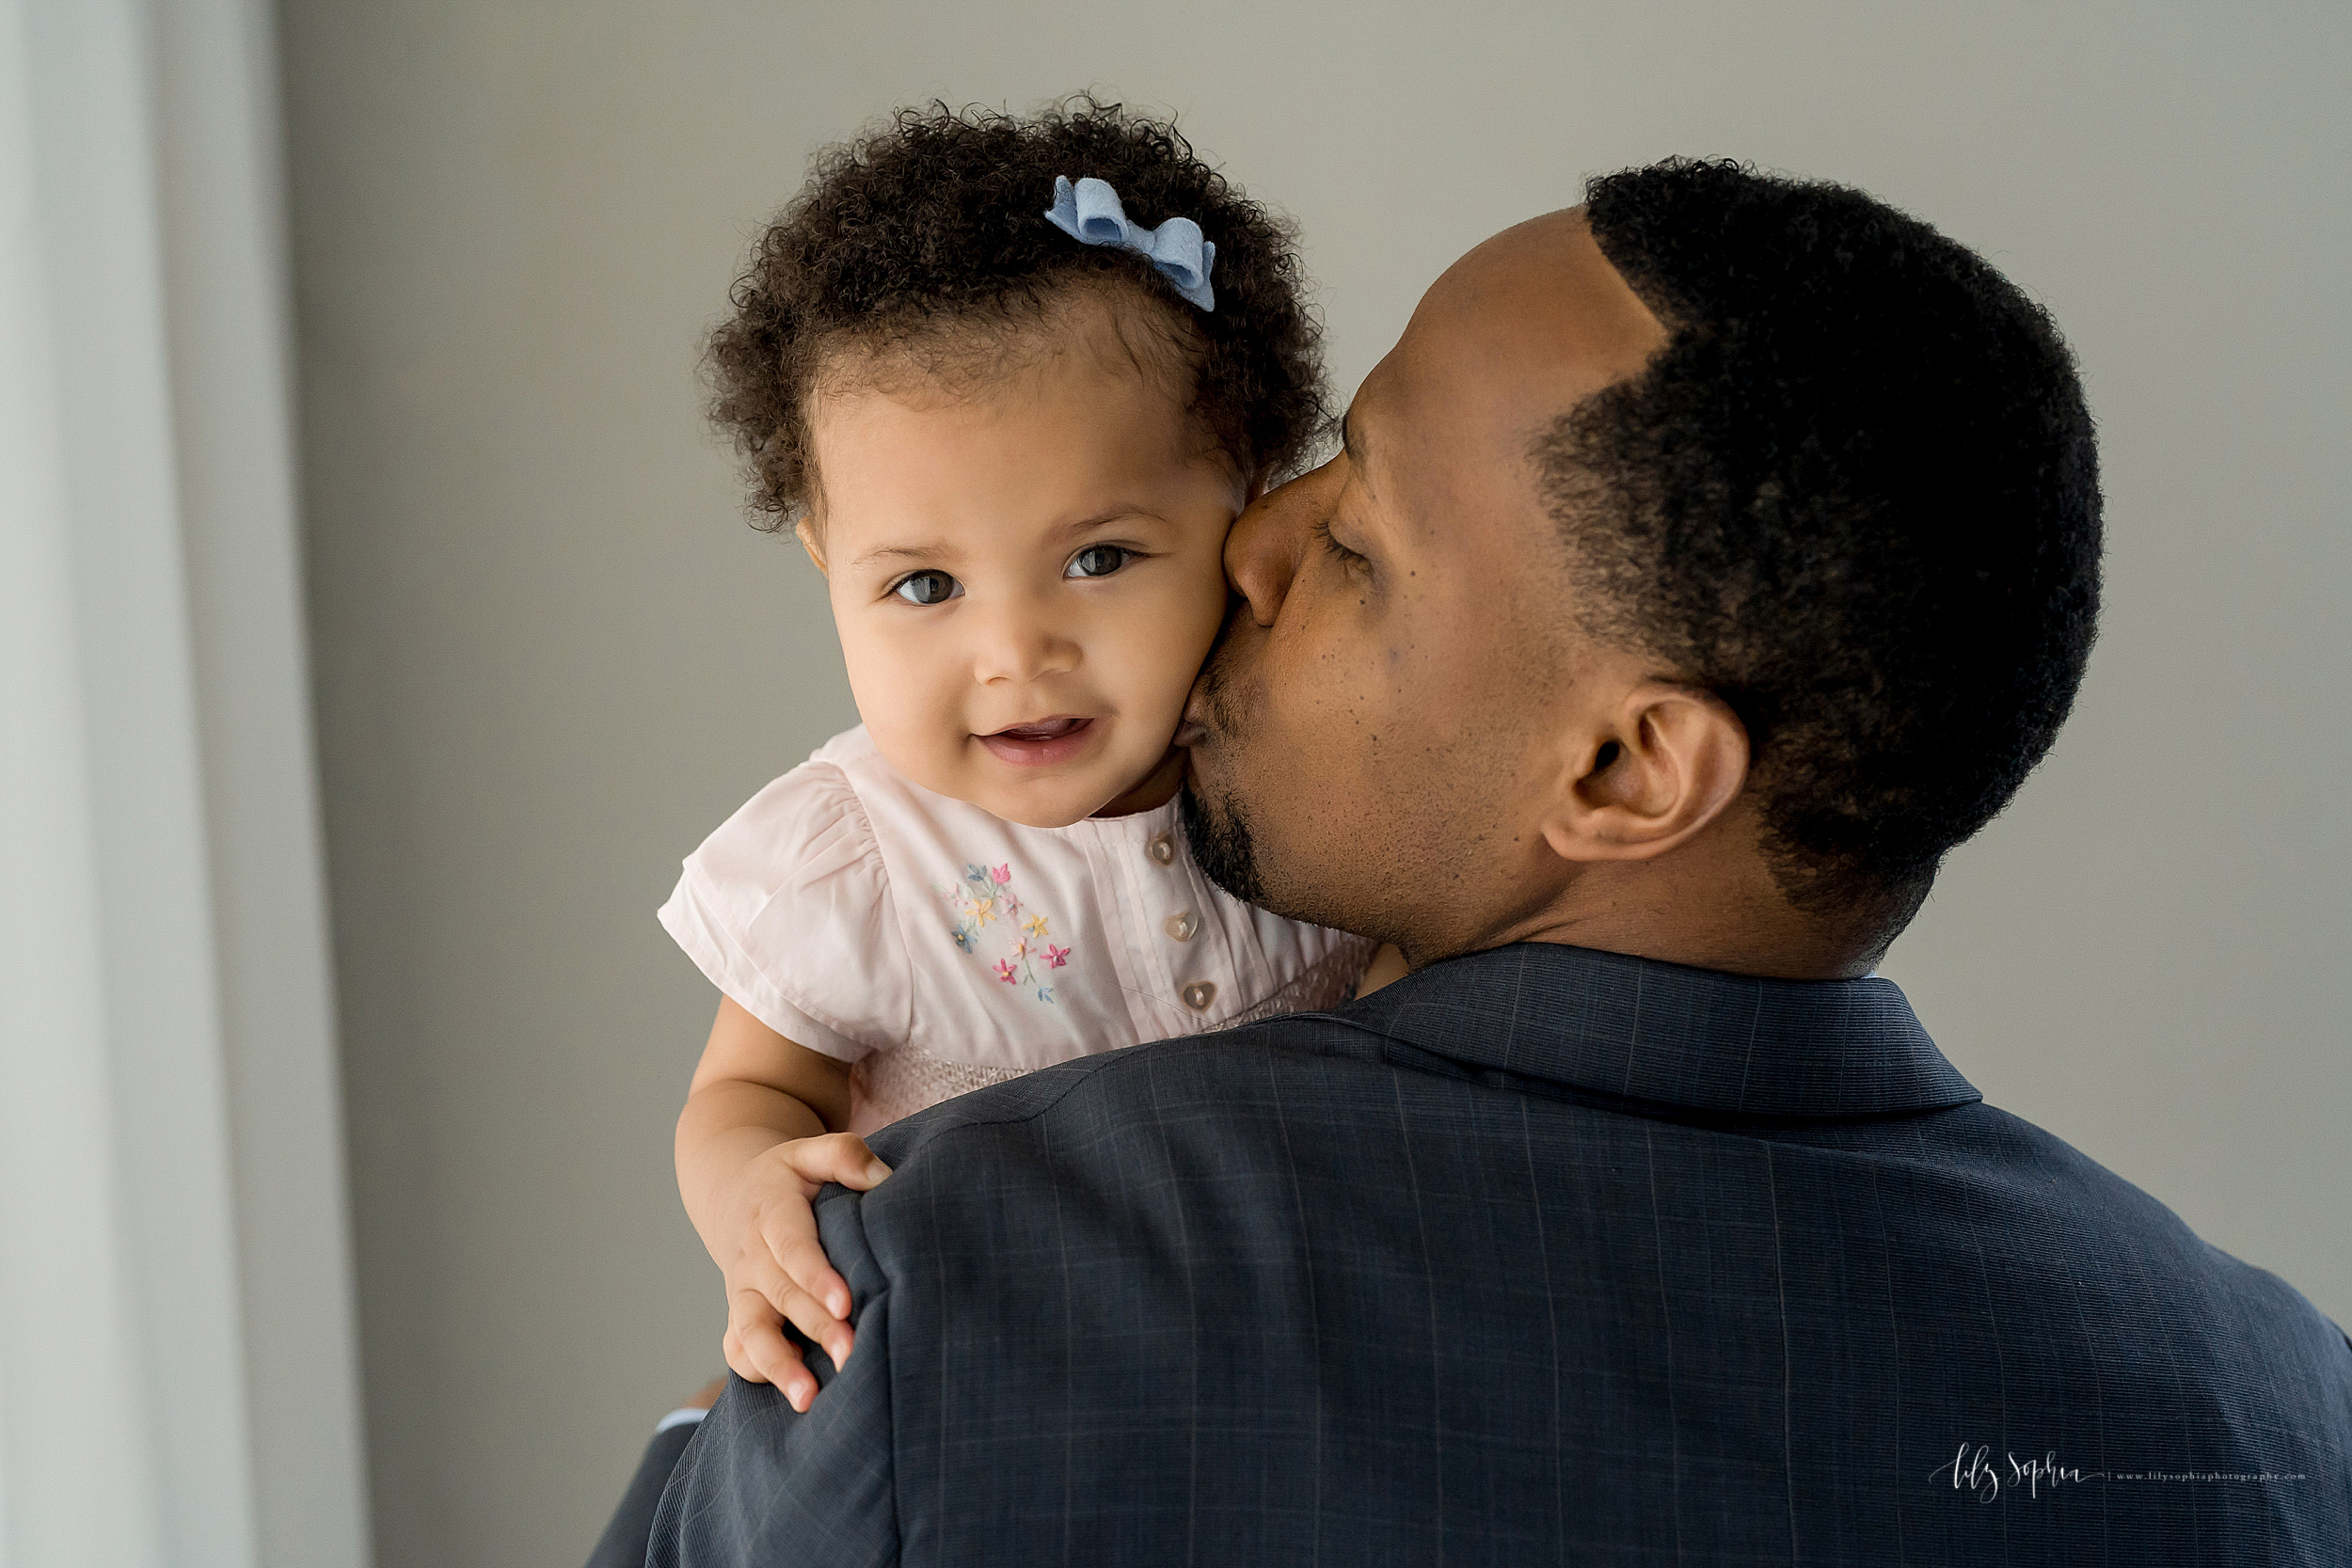 Photograph of an African-American Dad holding his baby daughter.  The baby daughter is looking over the right shoulder of the father as he kisses her cheek.